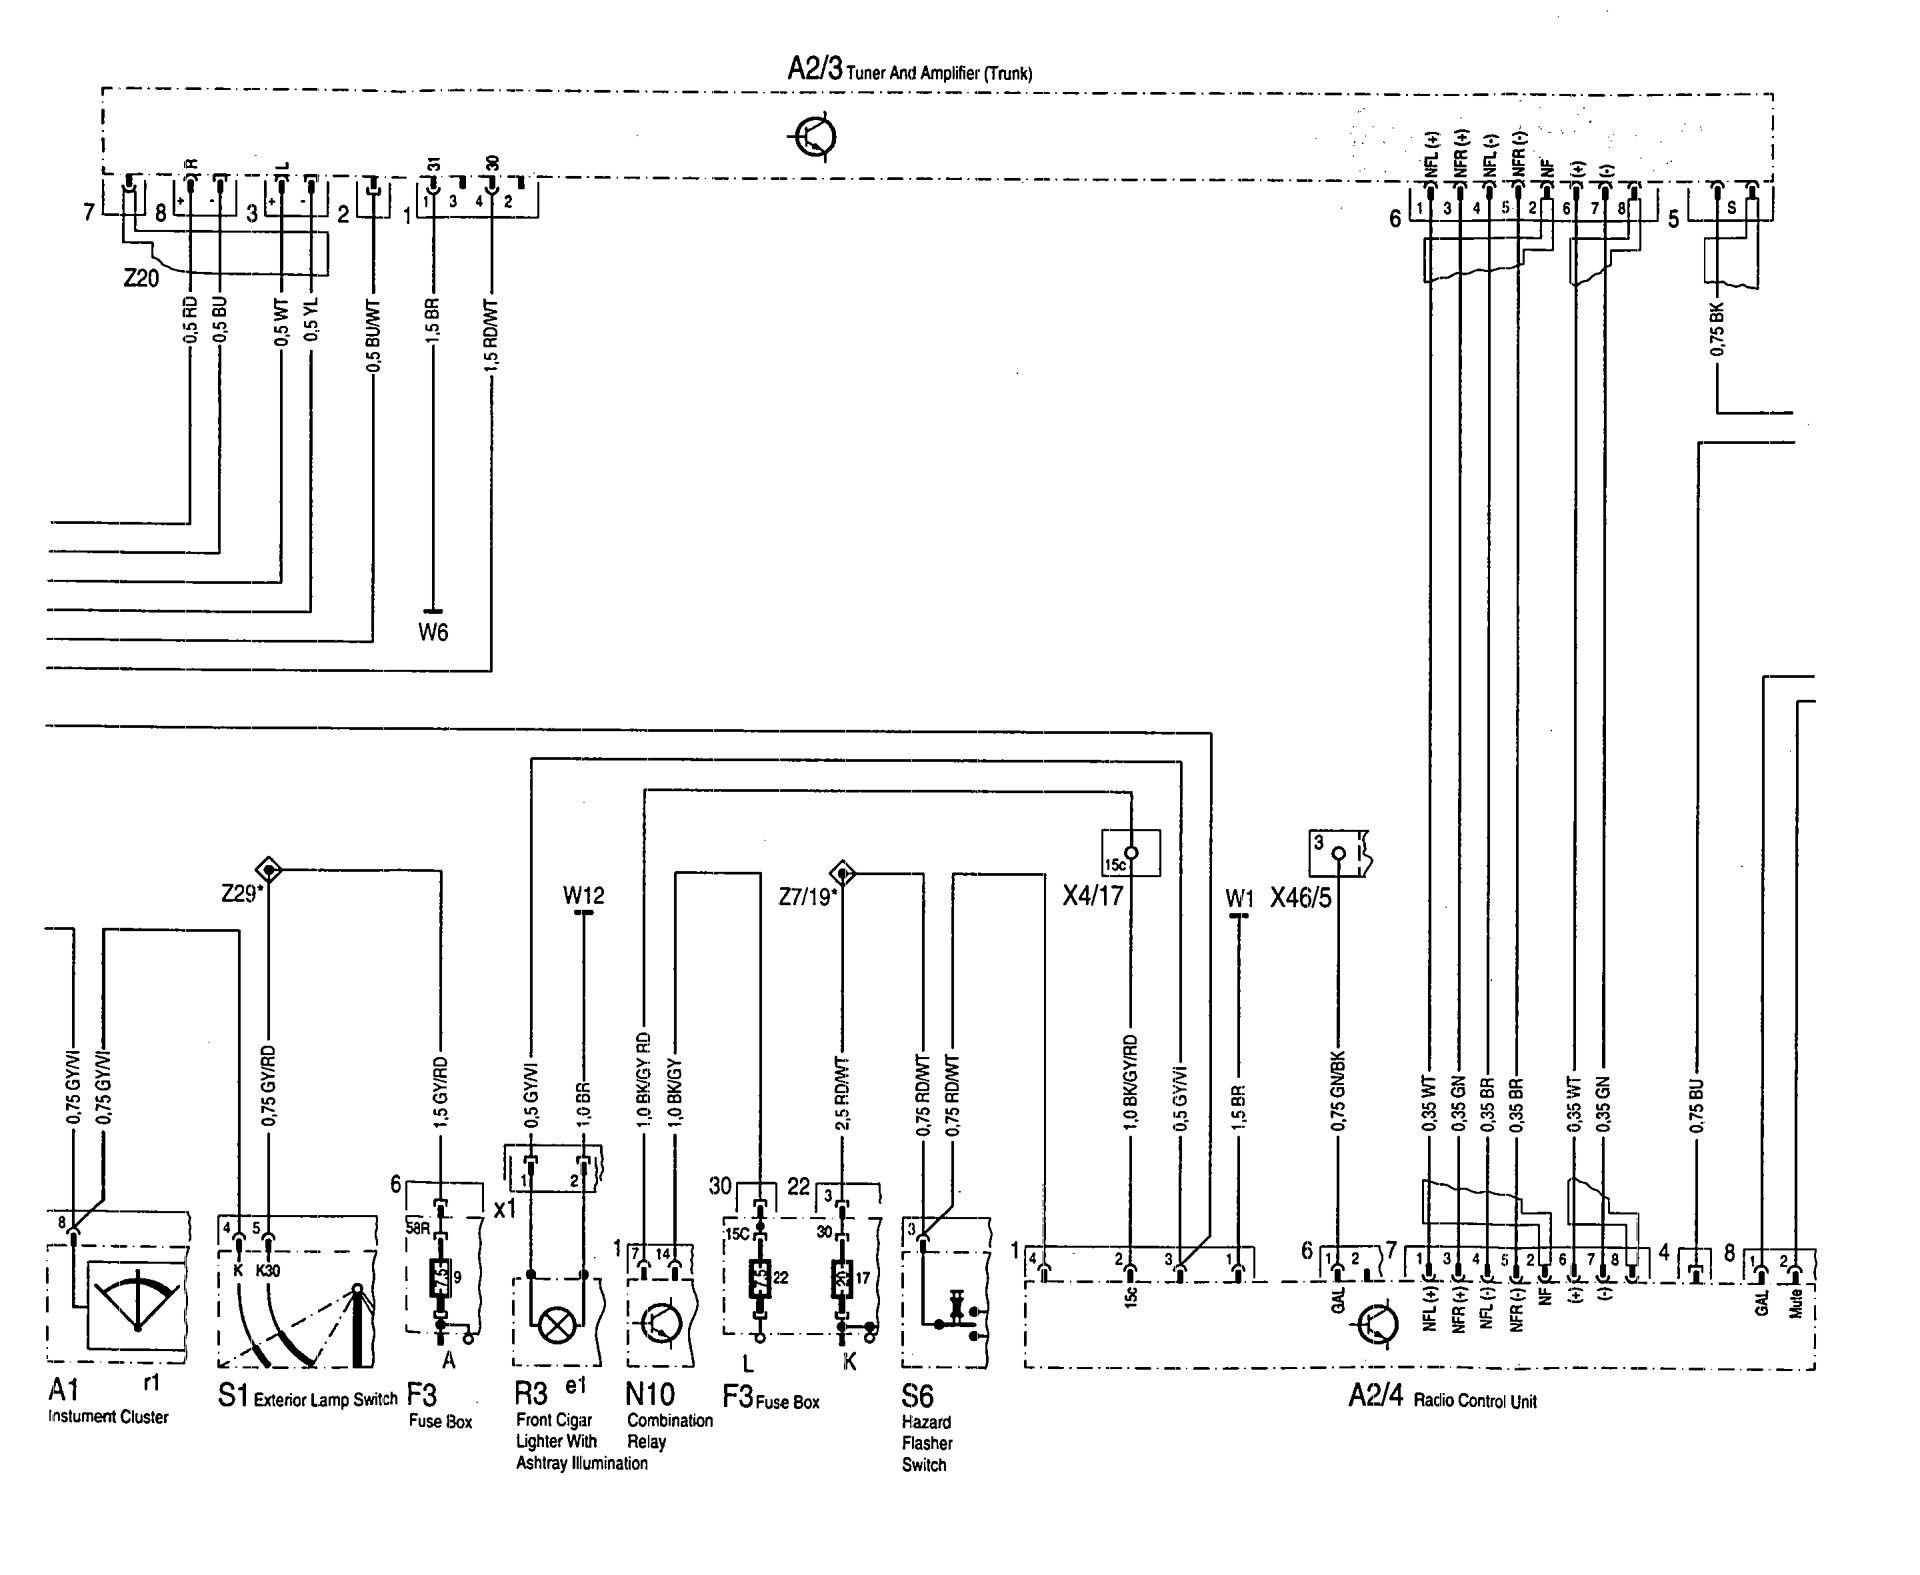 2013 Dodge Dart Fuse Diagram